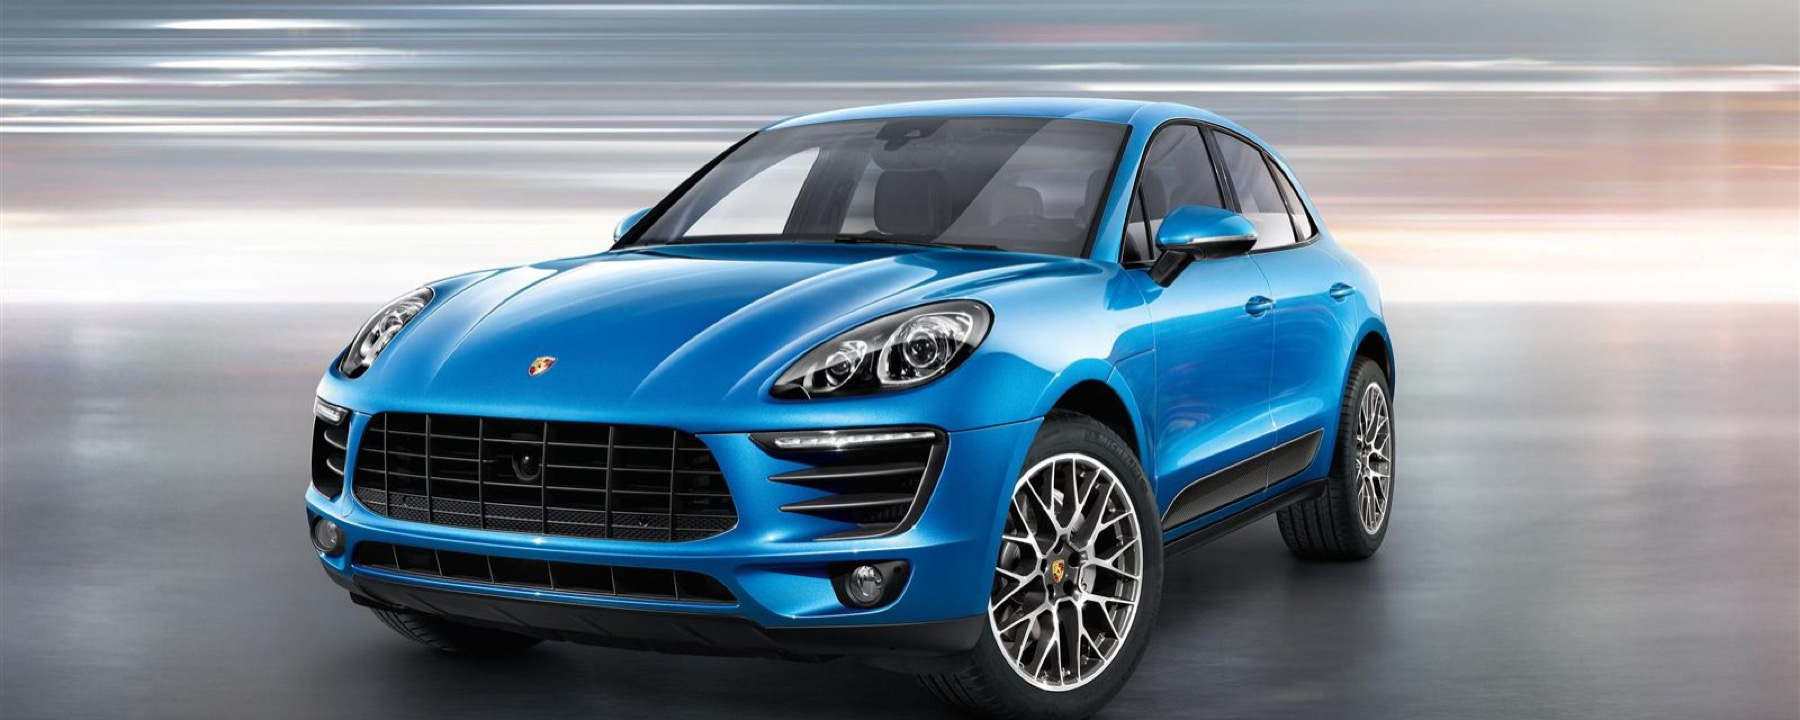 Comparing The Macan And The Macan Turbo Porsche Of